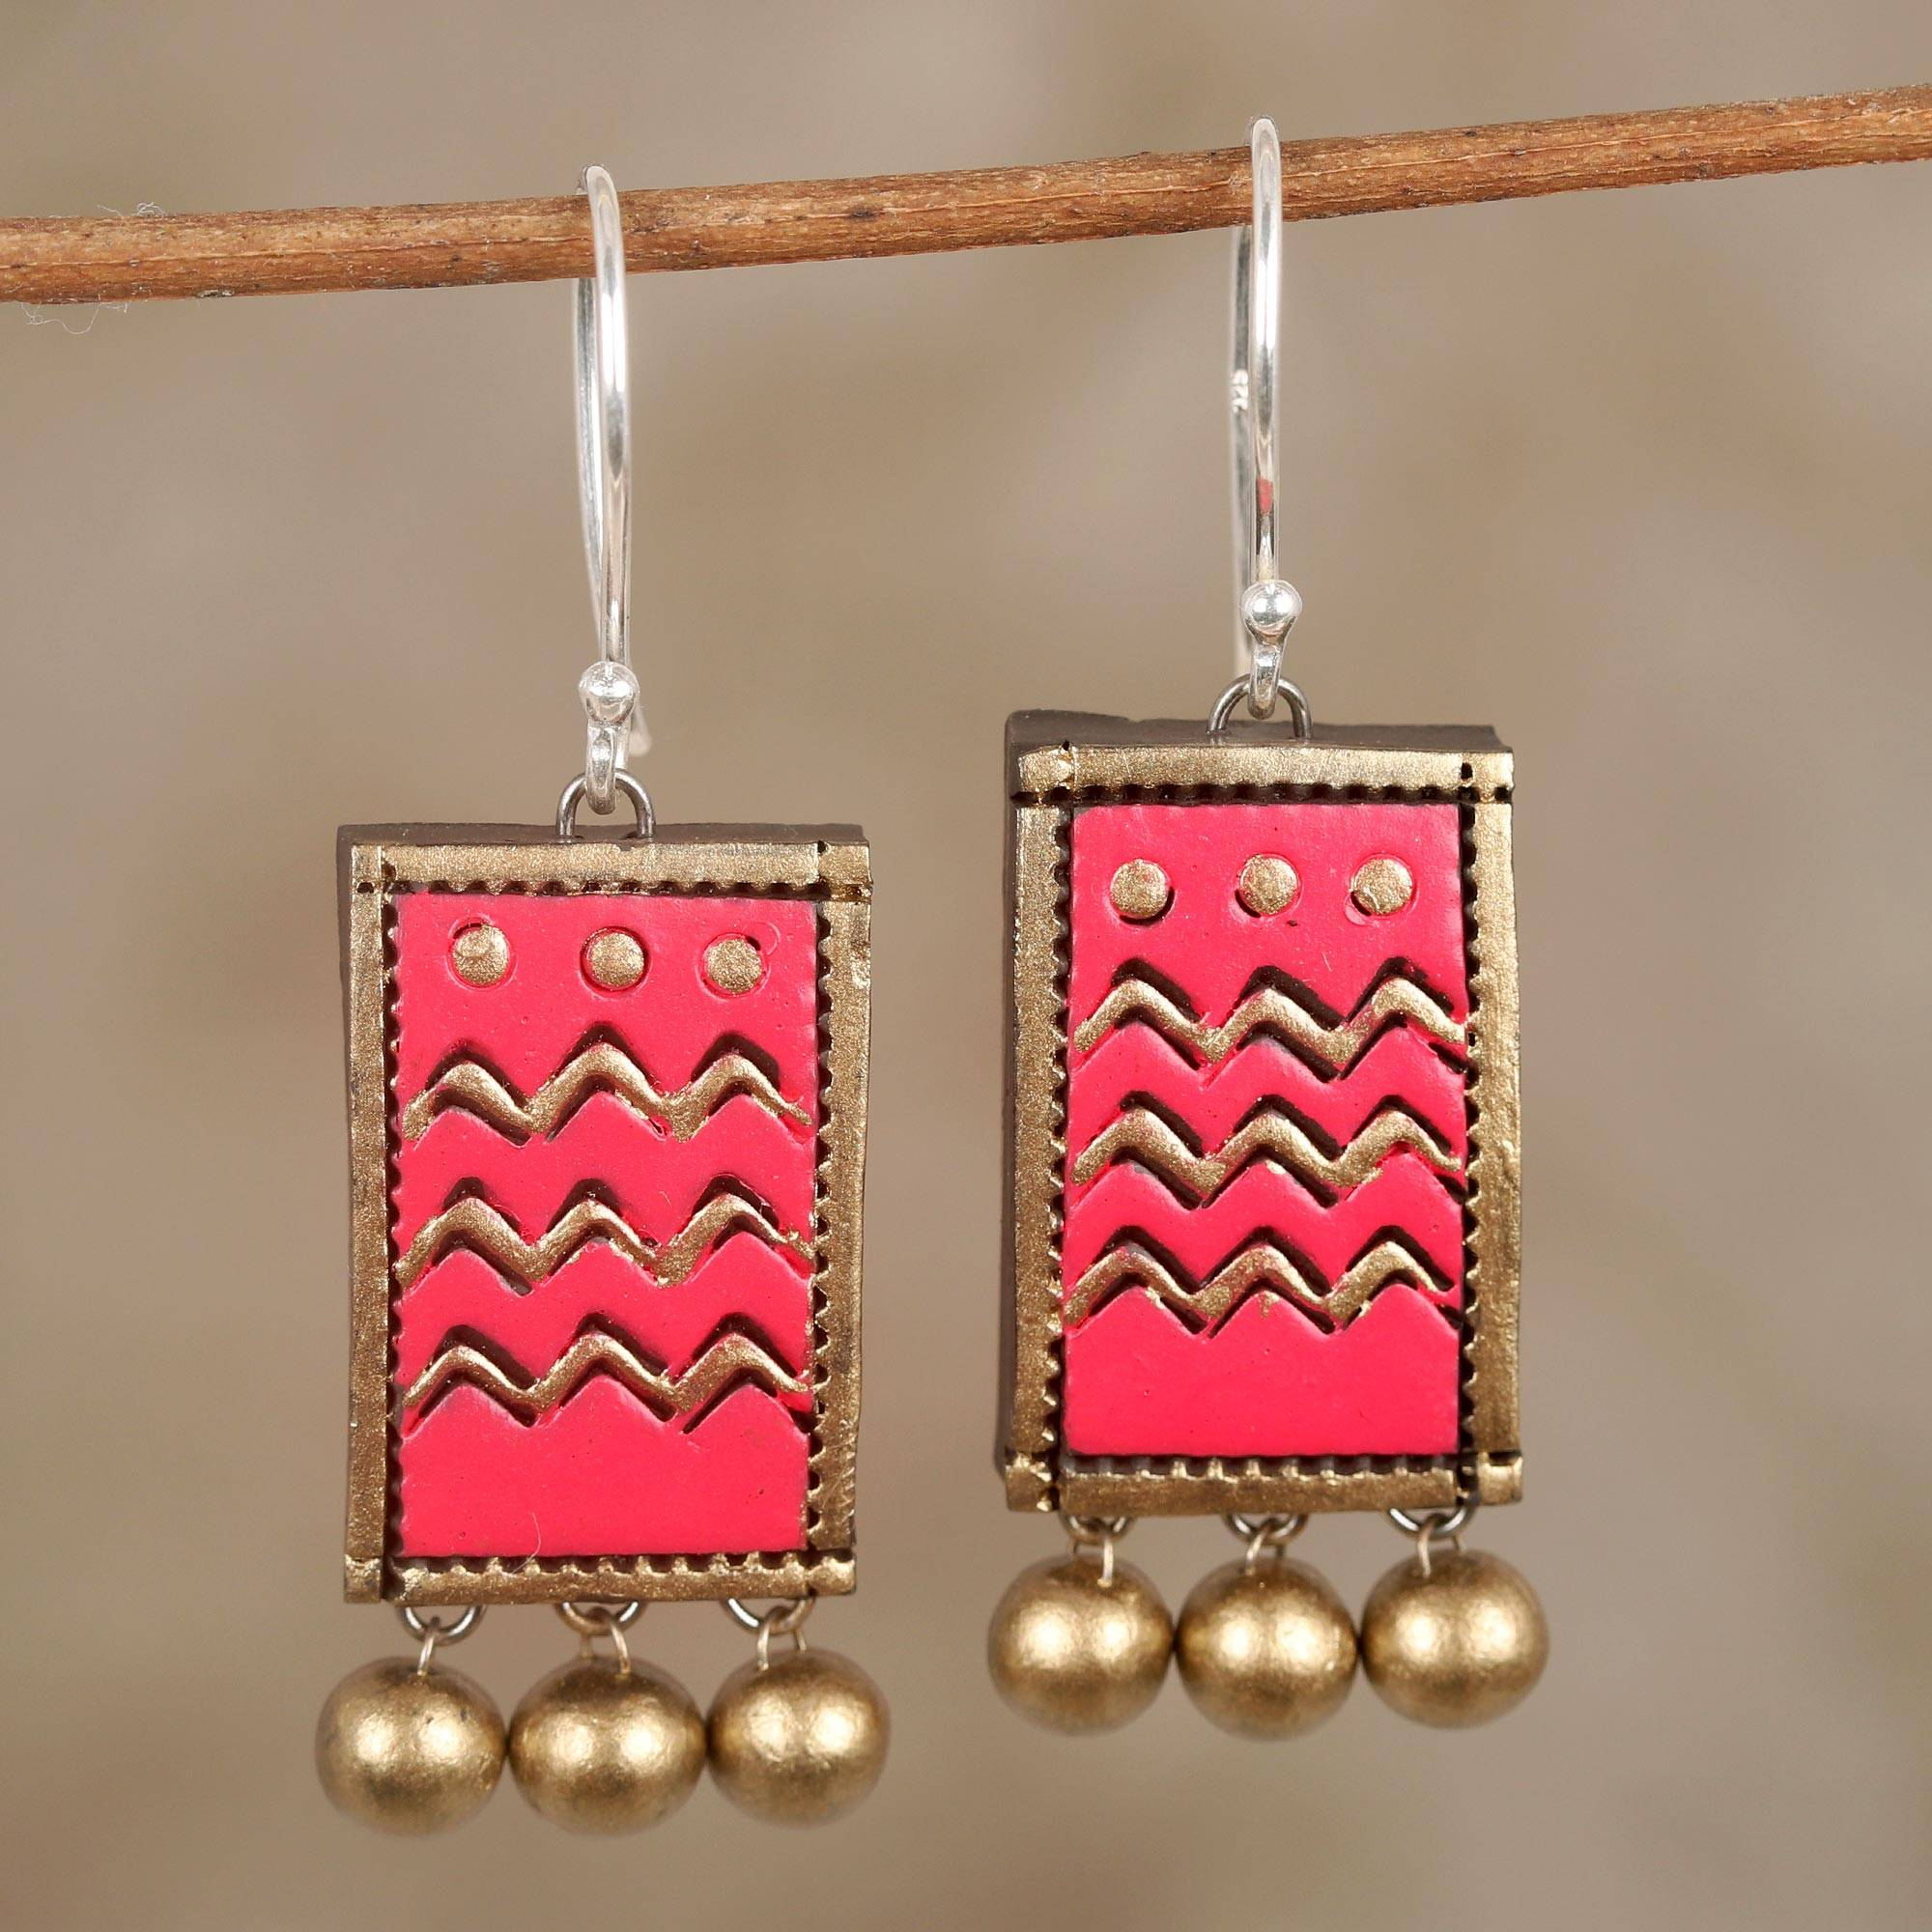 b hand leather diamond and earrings emerald boo painted glitter geometric pink factory product ombre jewelry